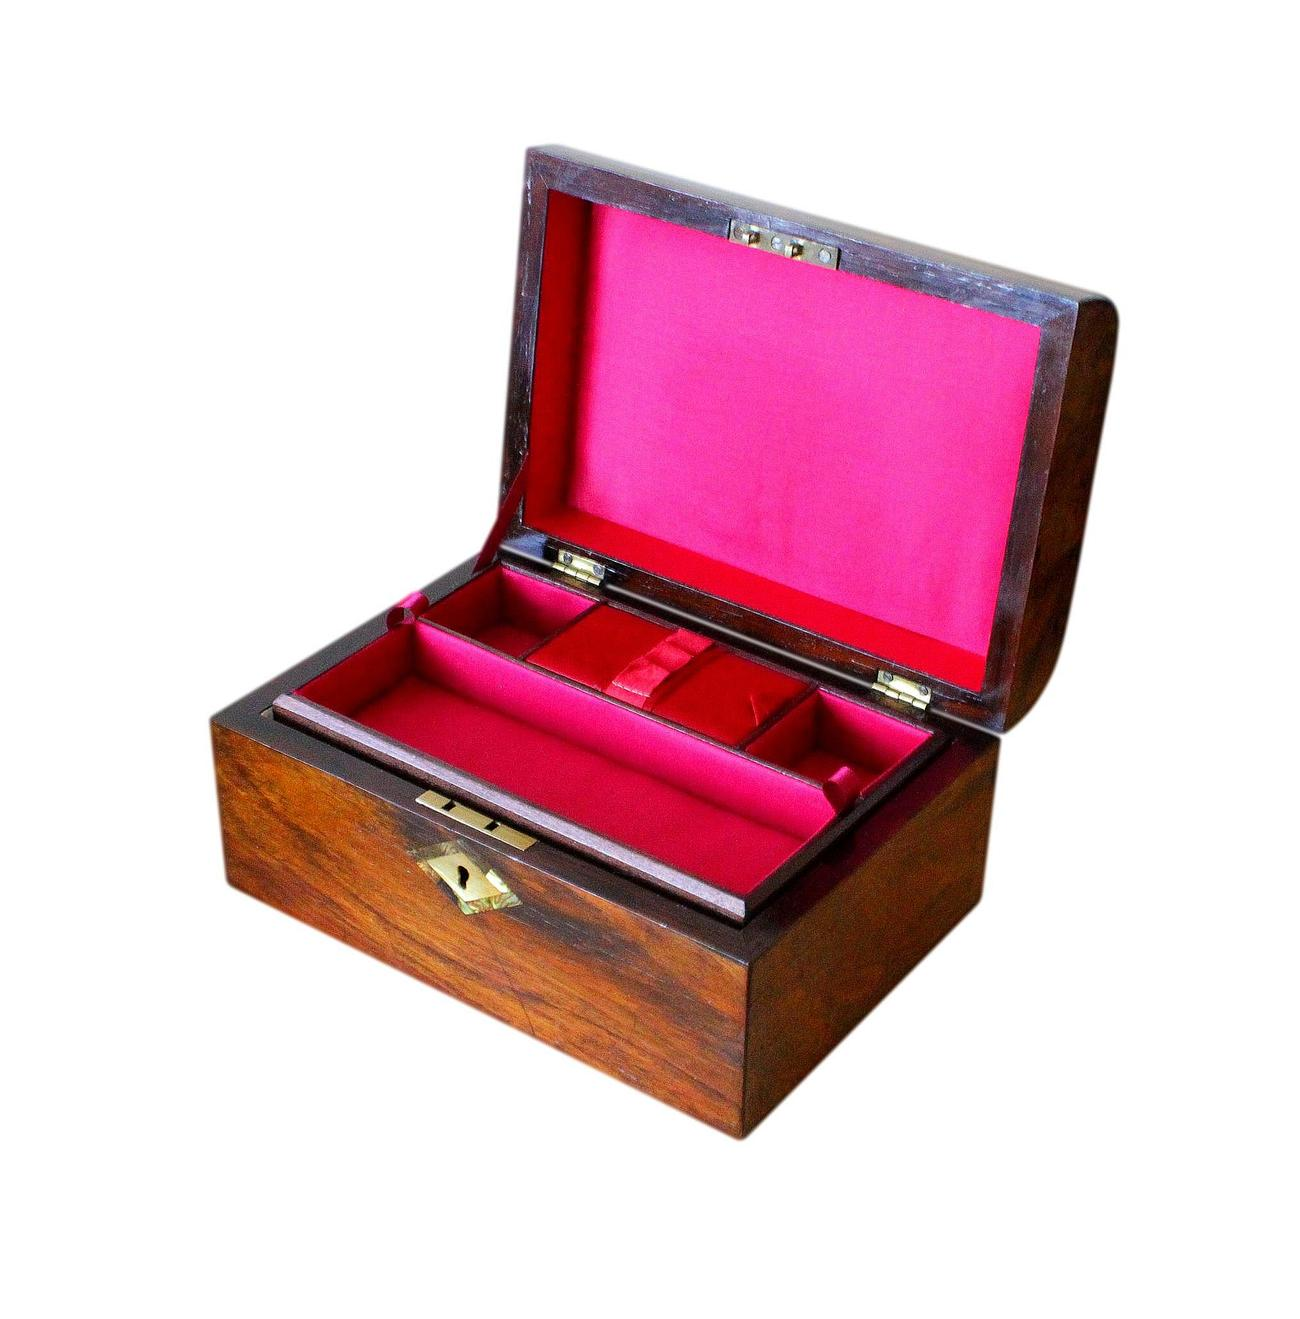 Antique_Refurished_Walnut_Jewellery_Box_Red_Int_3.jpg